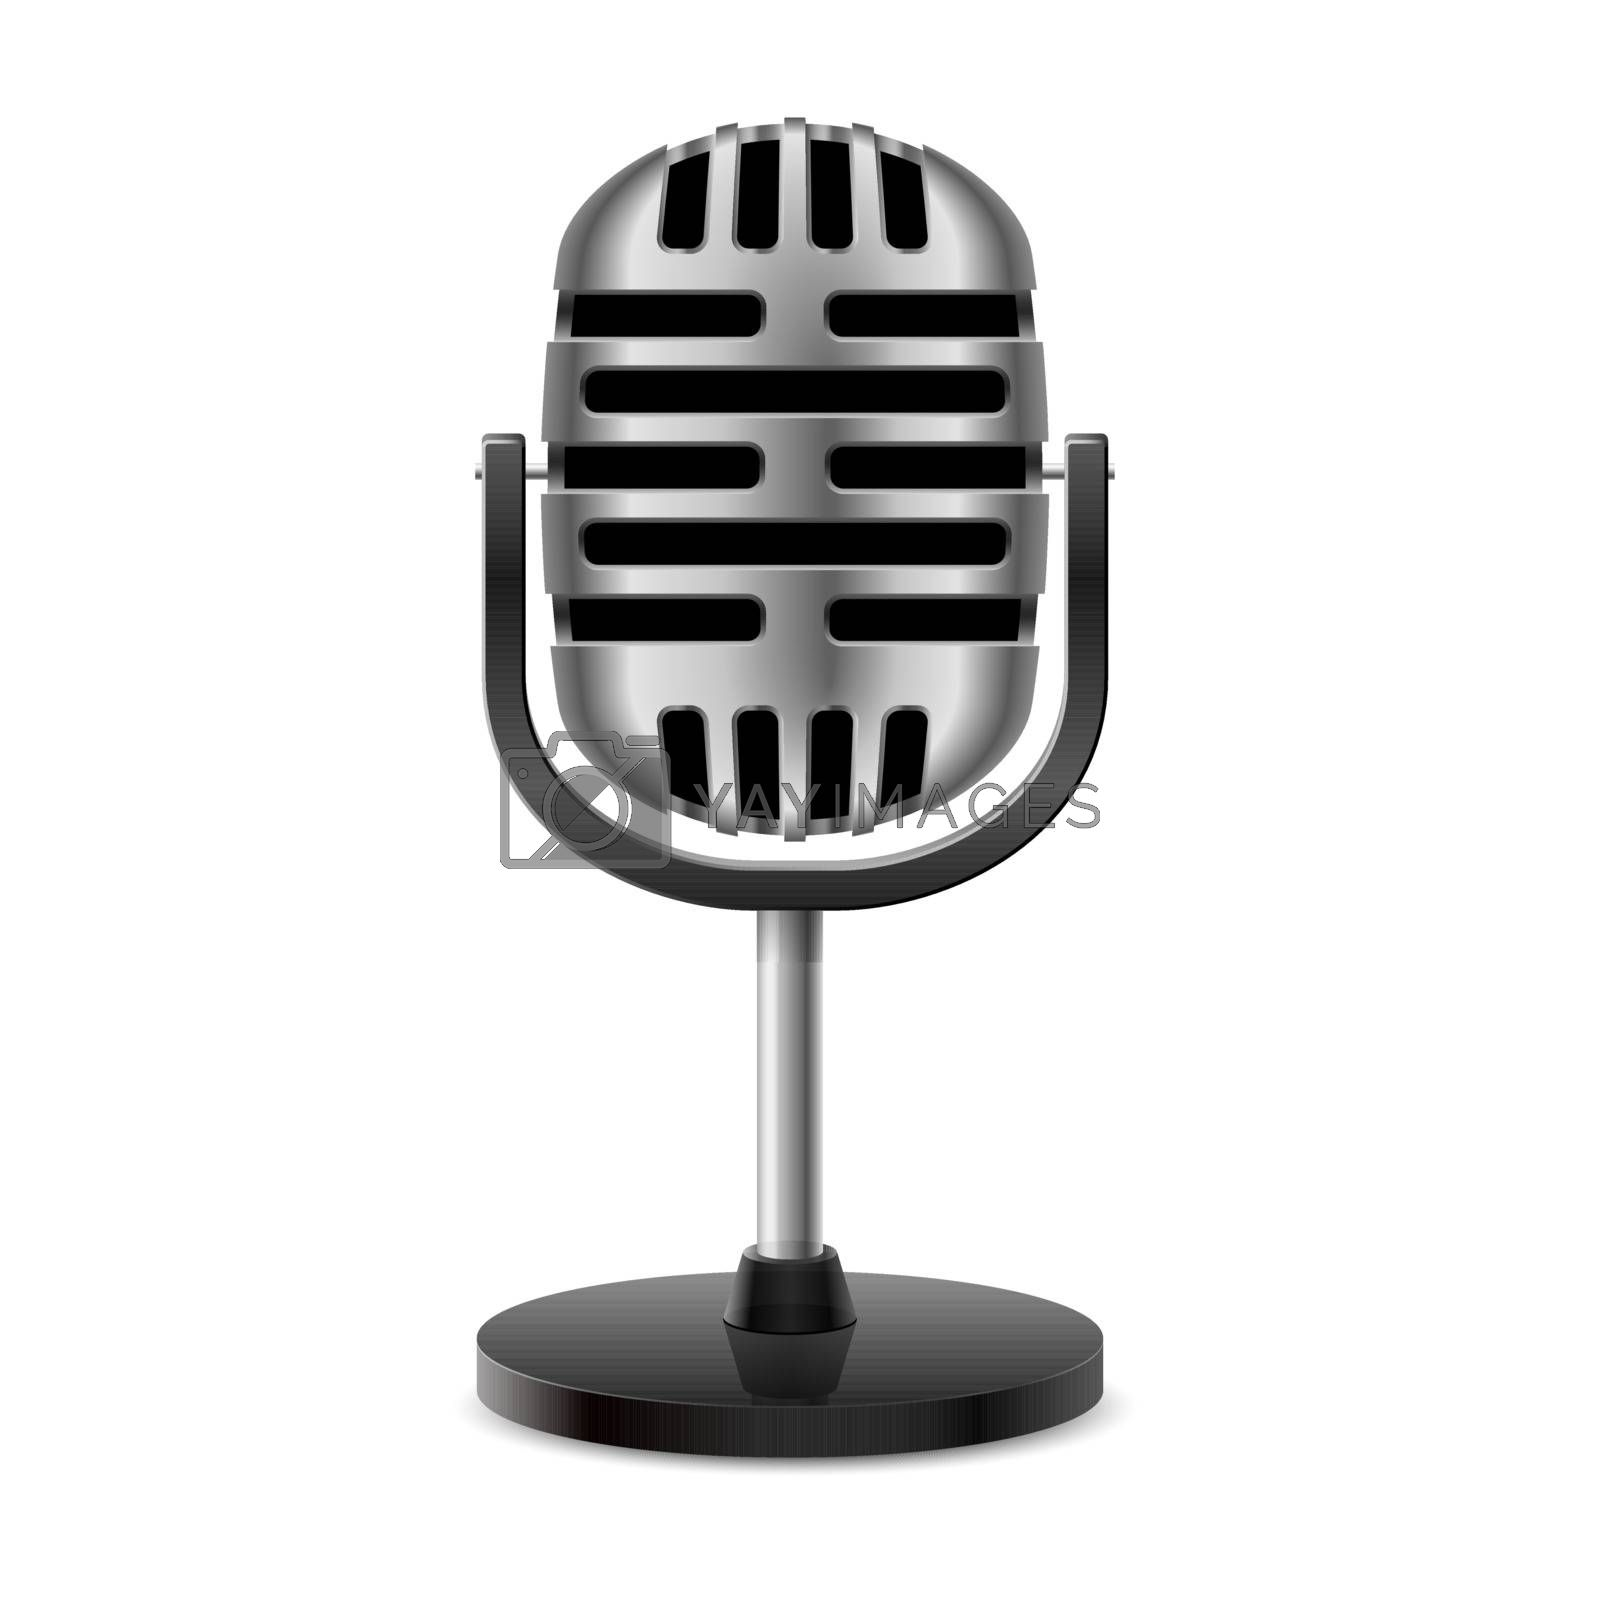 The silver metal vintage retro isolated microphone.